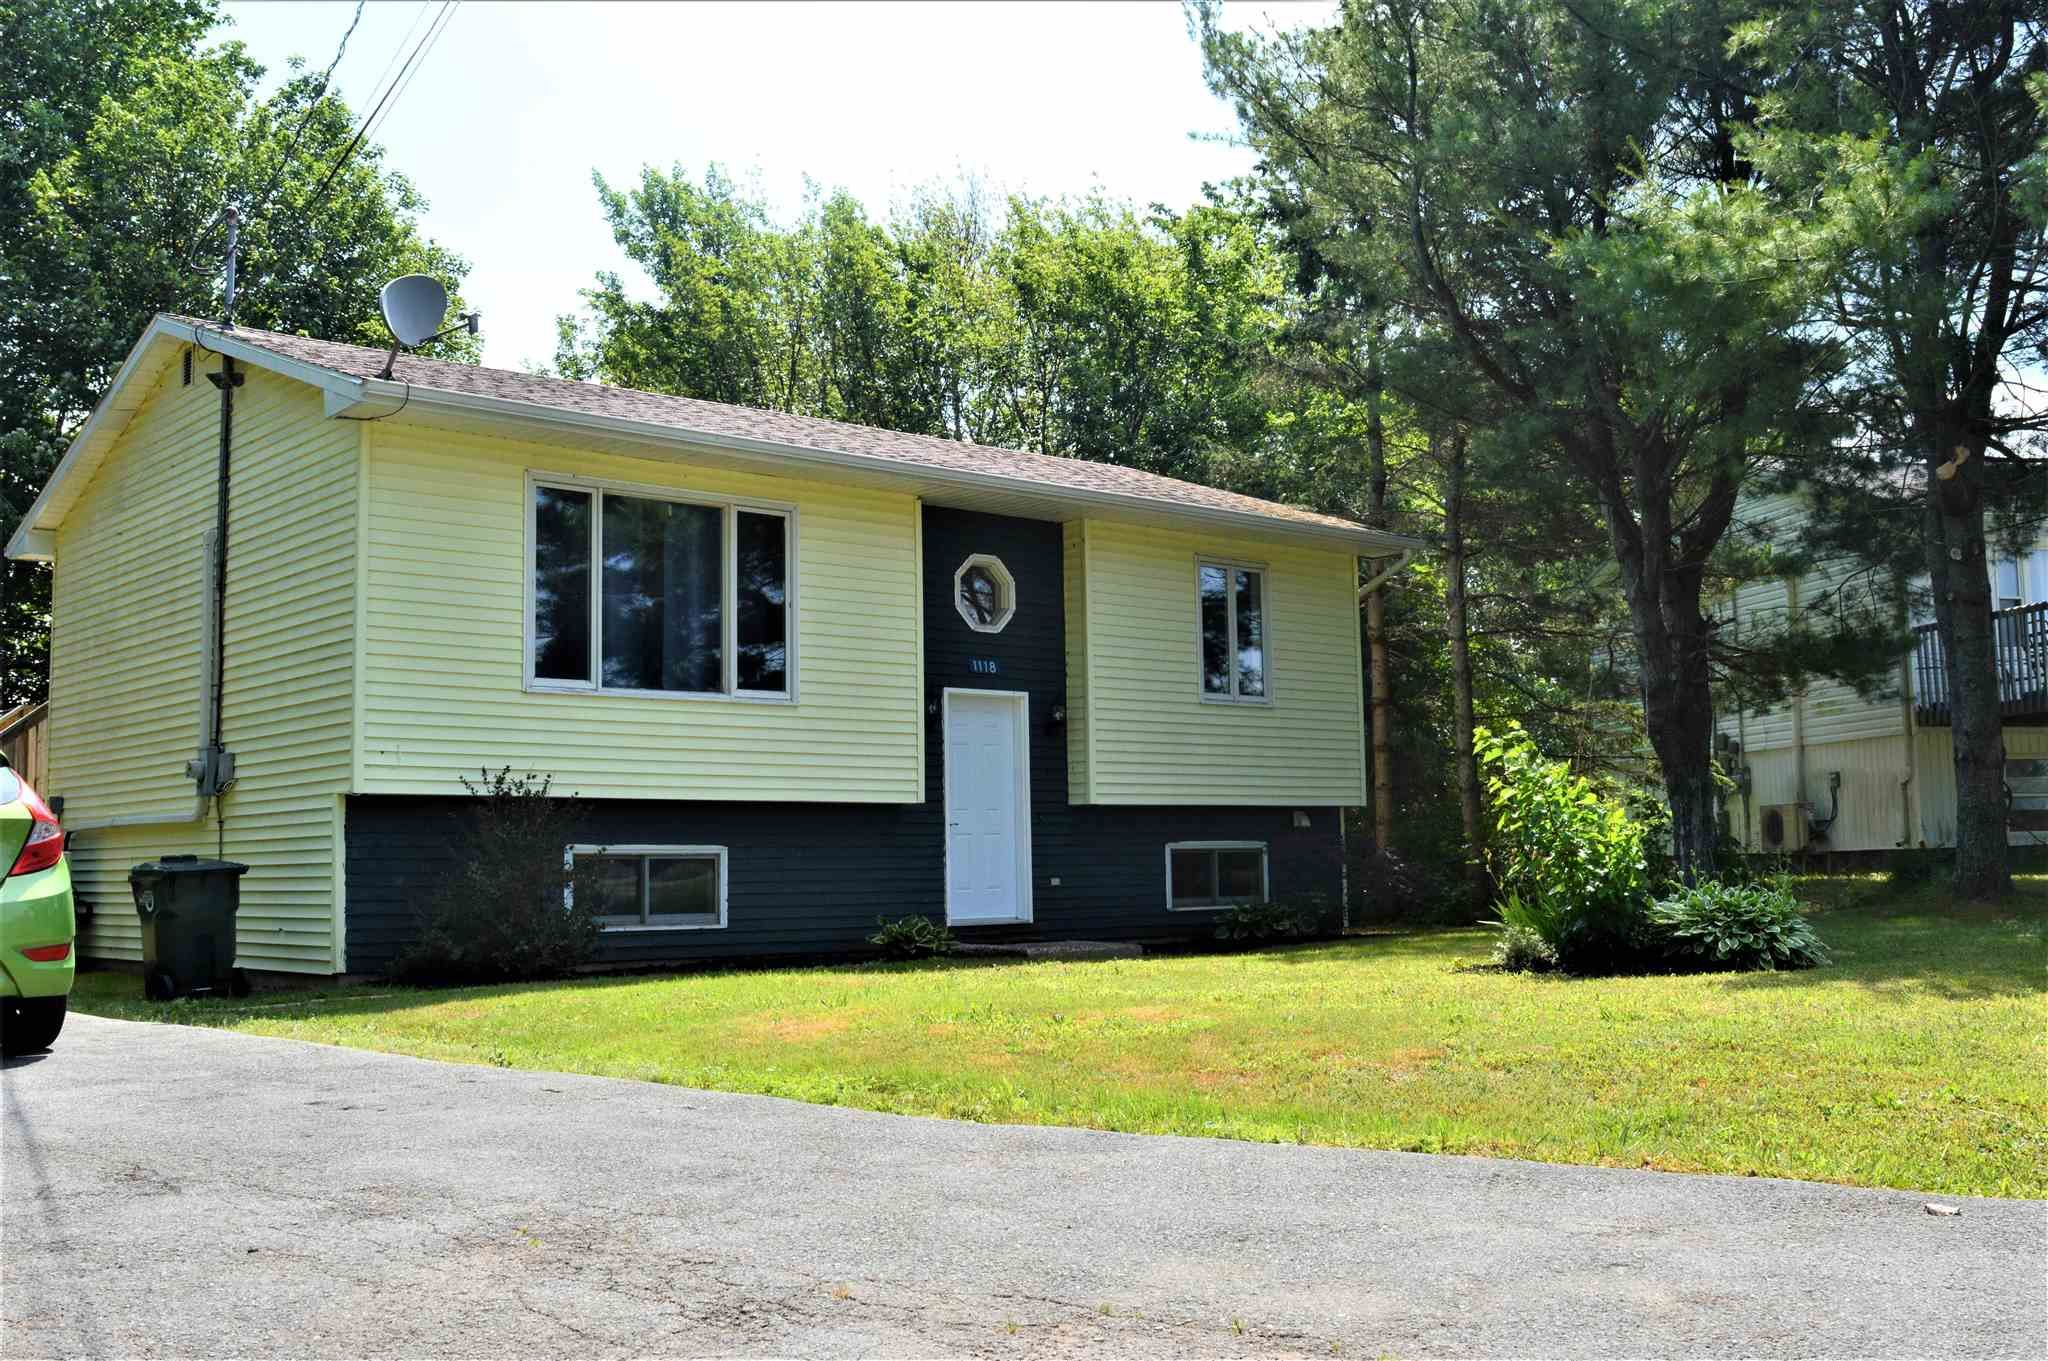 Main Photo: 1118 Morse Lane in Centreville: 404-Kings County Residential for sale (Annapolis Valley)  : MLS®# 202116923